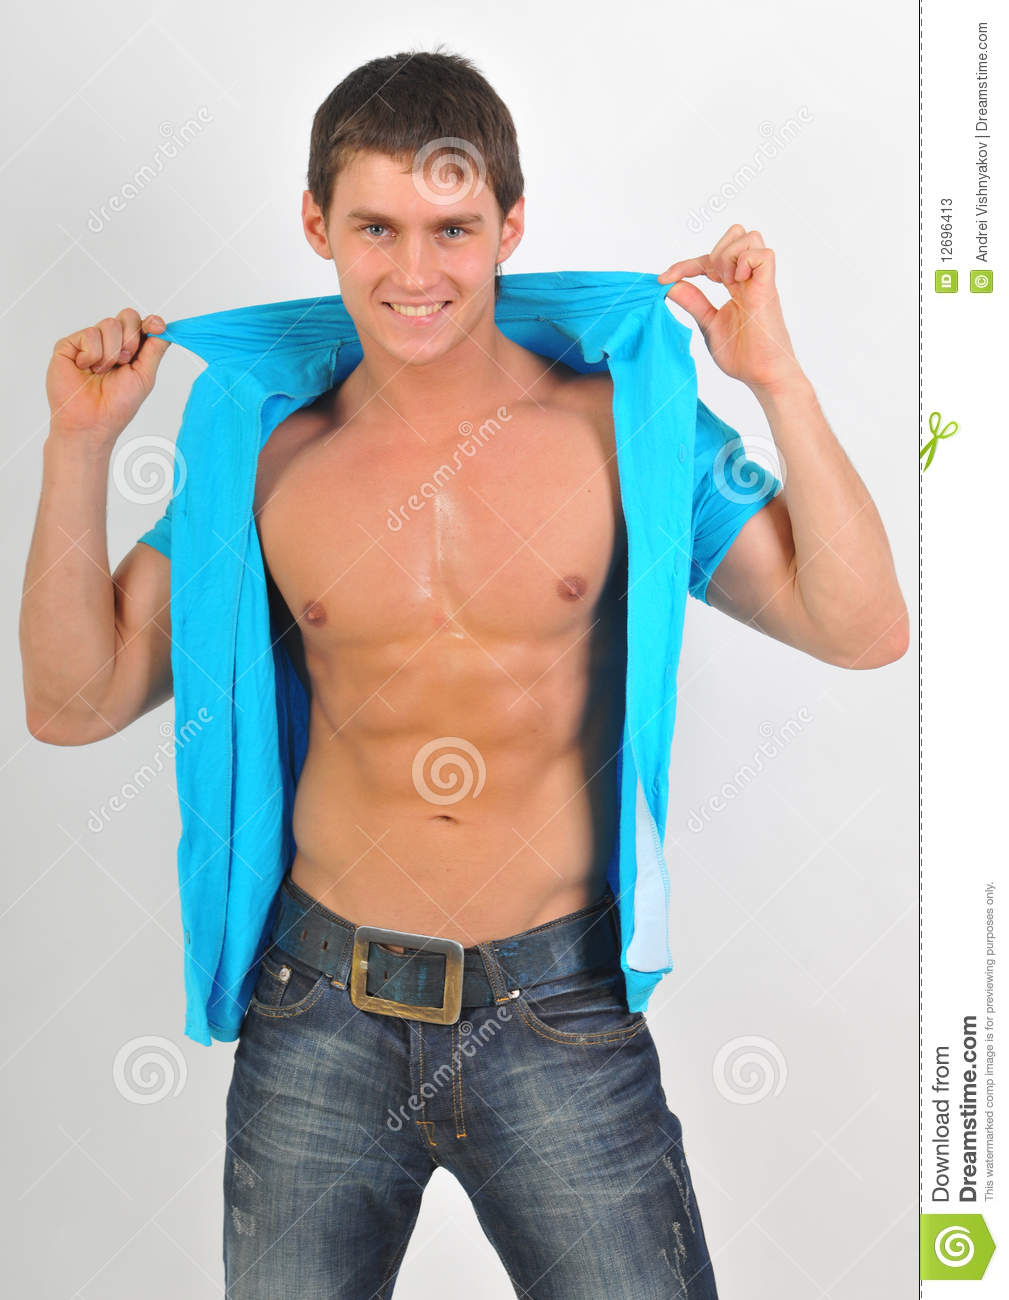 Blue Model Model In Blue Shirt Stock Image Image Of Muscularity 12696413